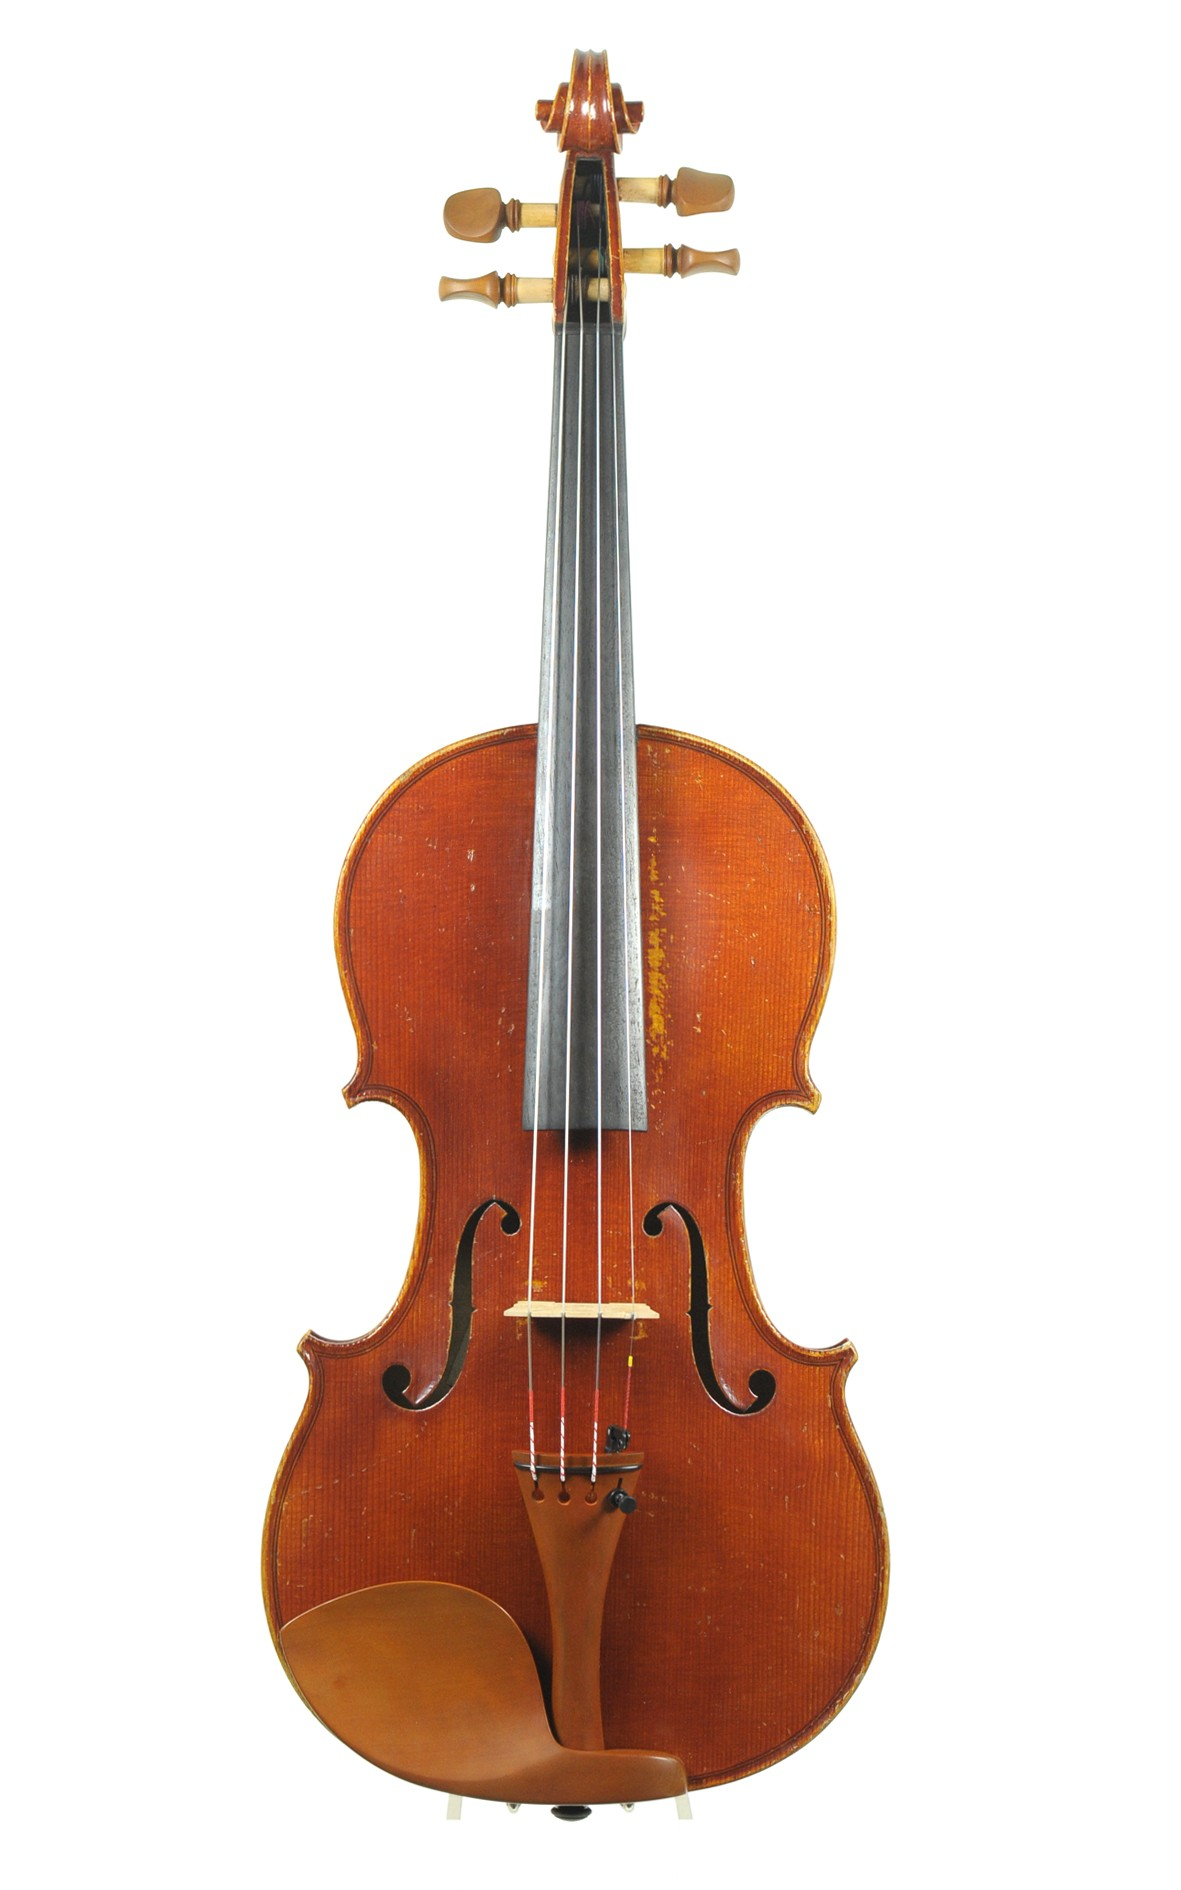 Violin by Braun & Hauser München, approximately 1900